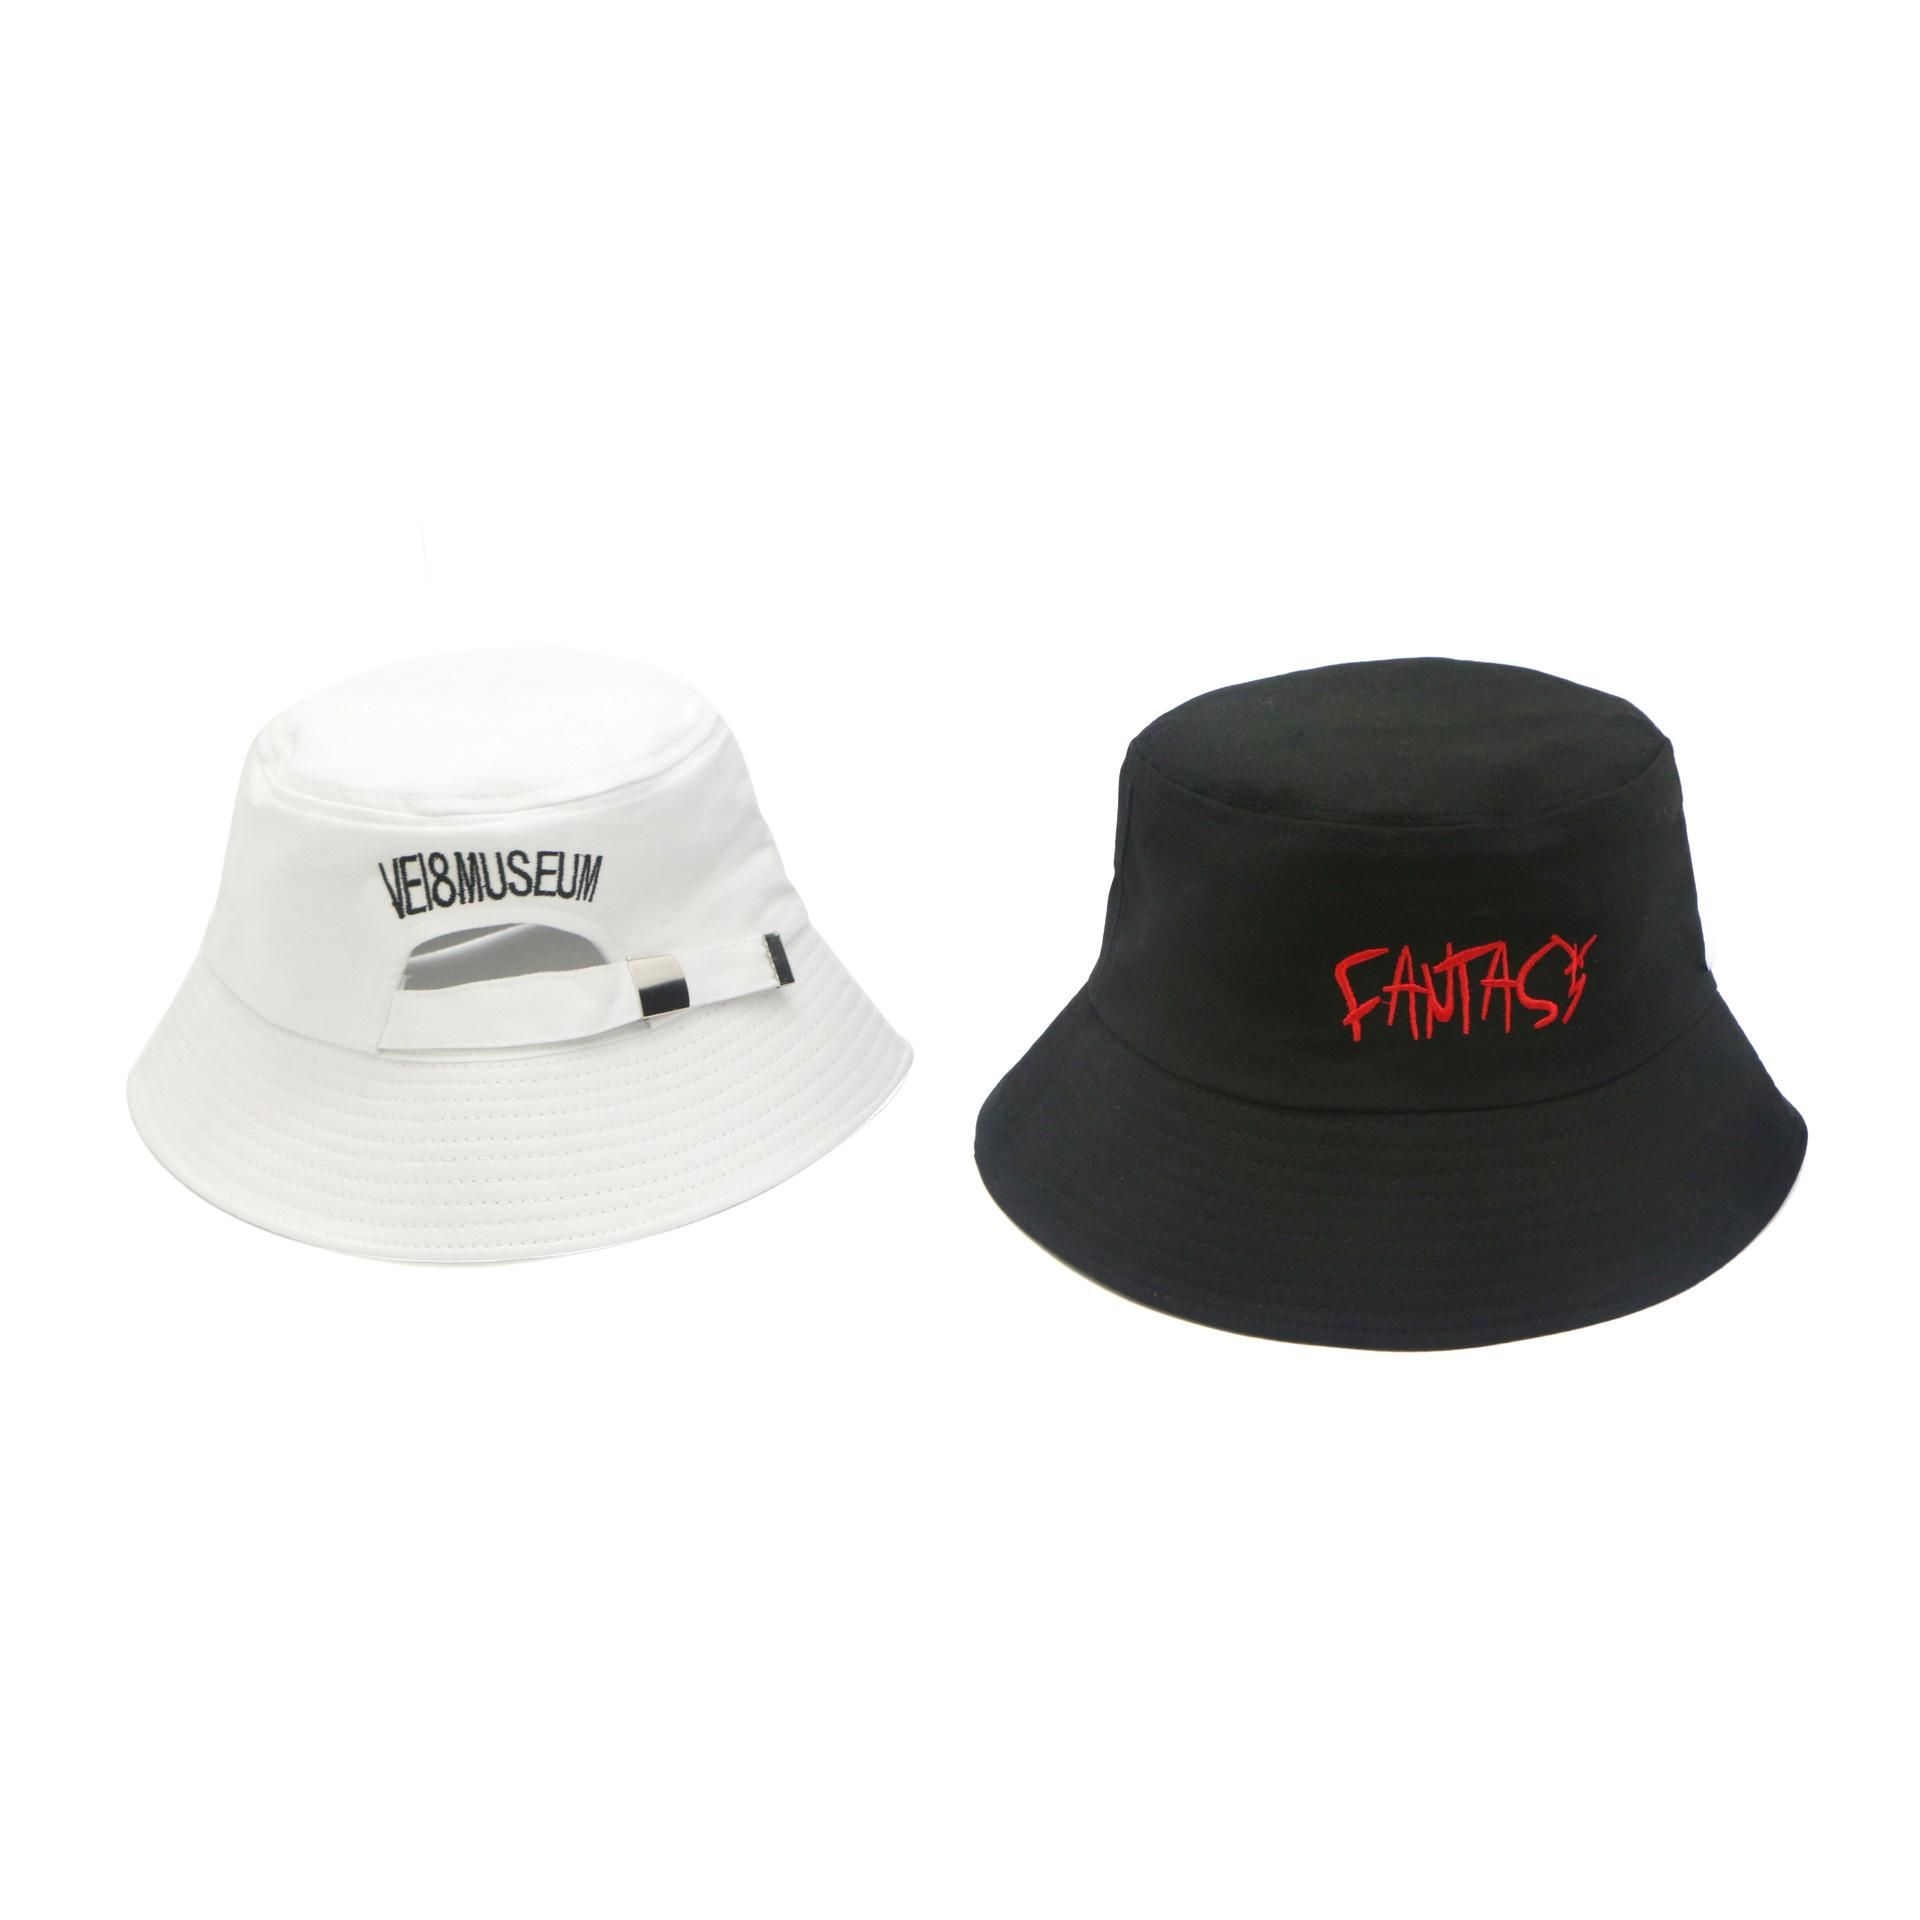 Black White Cotton Embroidery Letter Adjustable Fisherman S Hat Sun Cap  Snapback Hats Oversized Sunbonnet Beach Cap For Women Man Cap Hat From  Hearting 448ffef693f